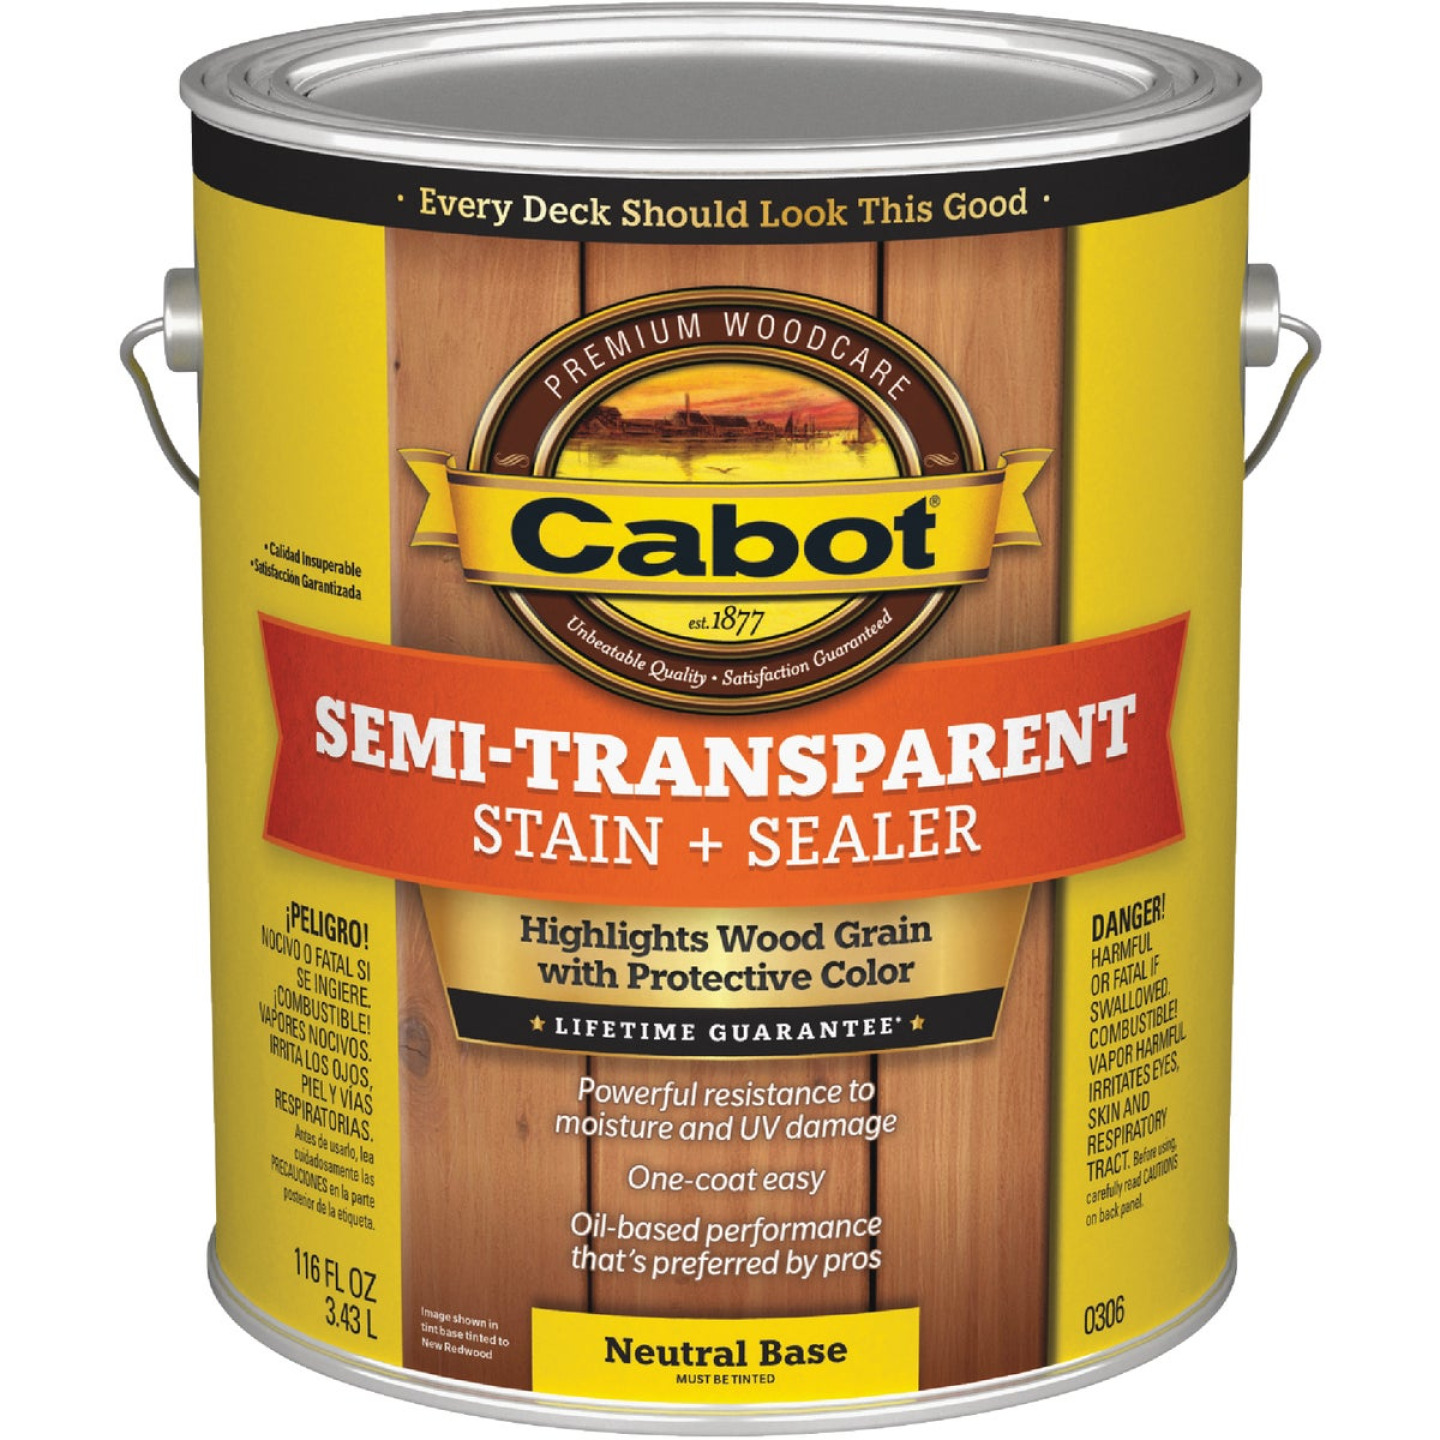 Cabot Semi-Transparent Deck & Siding Exterior Stain, Neutral Base, 1 Gal. Image 1